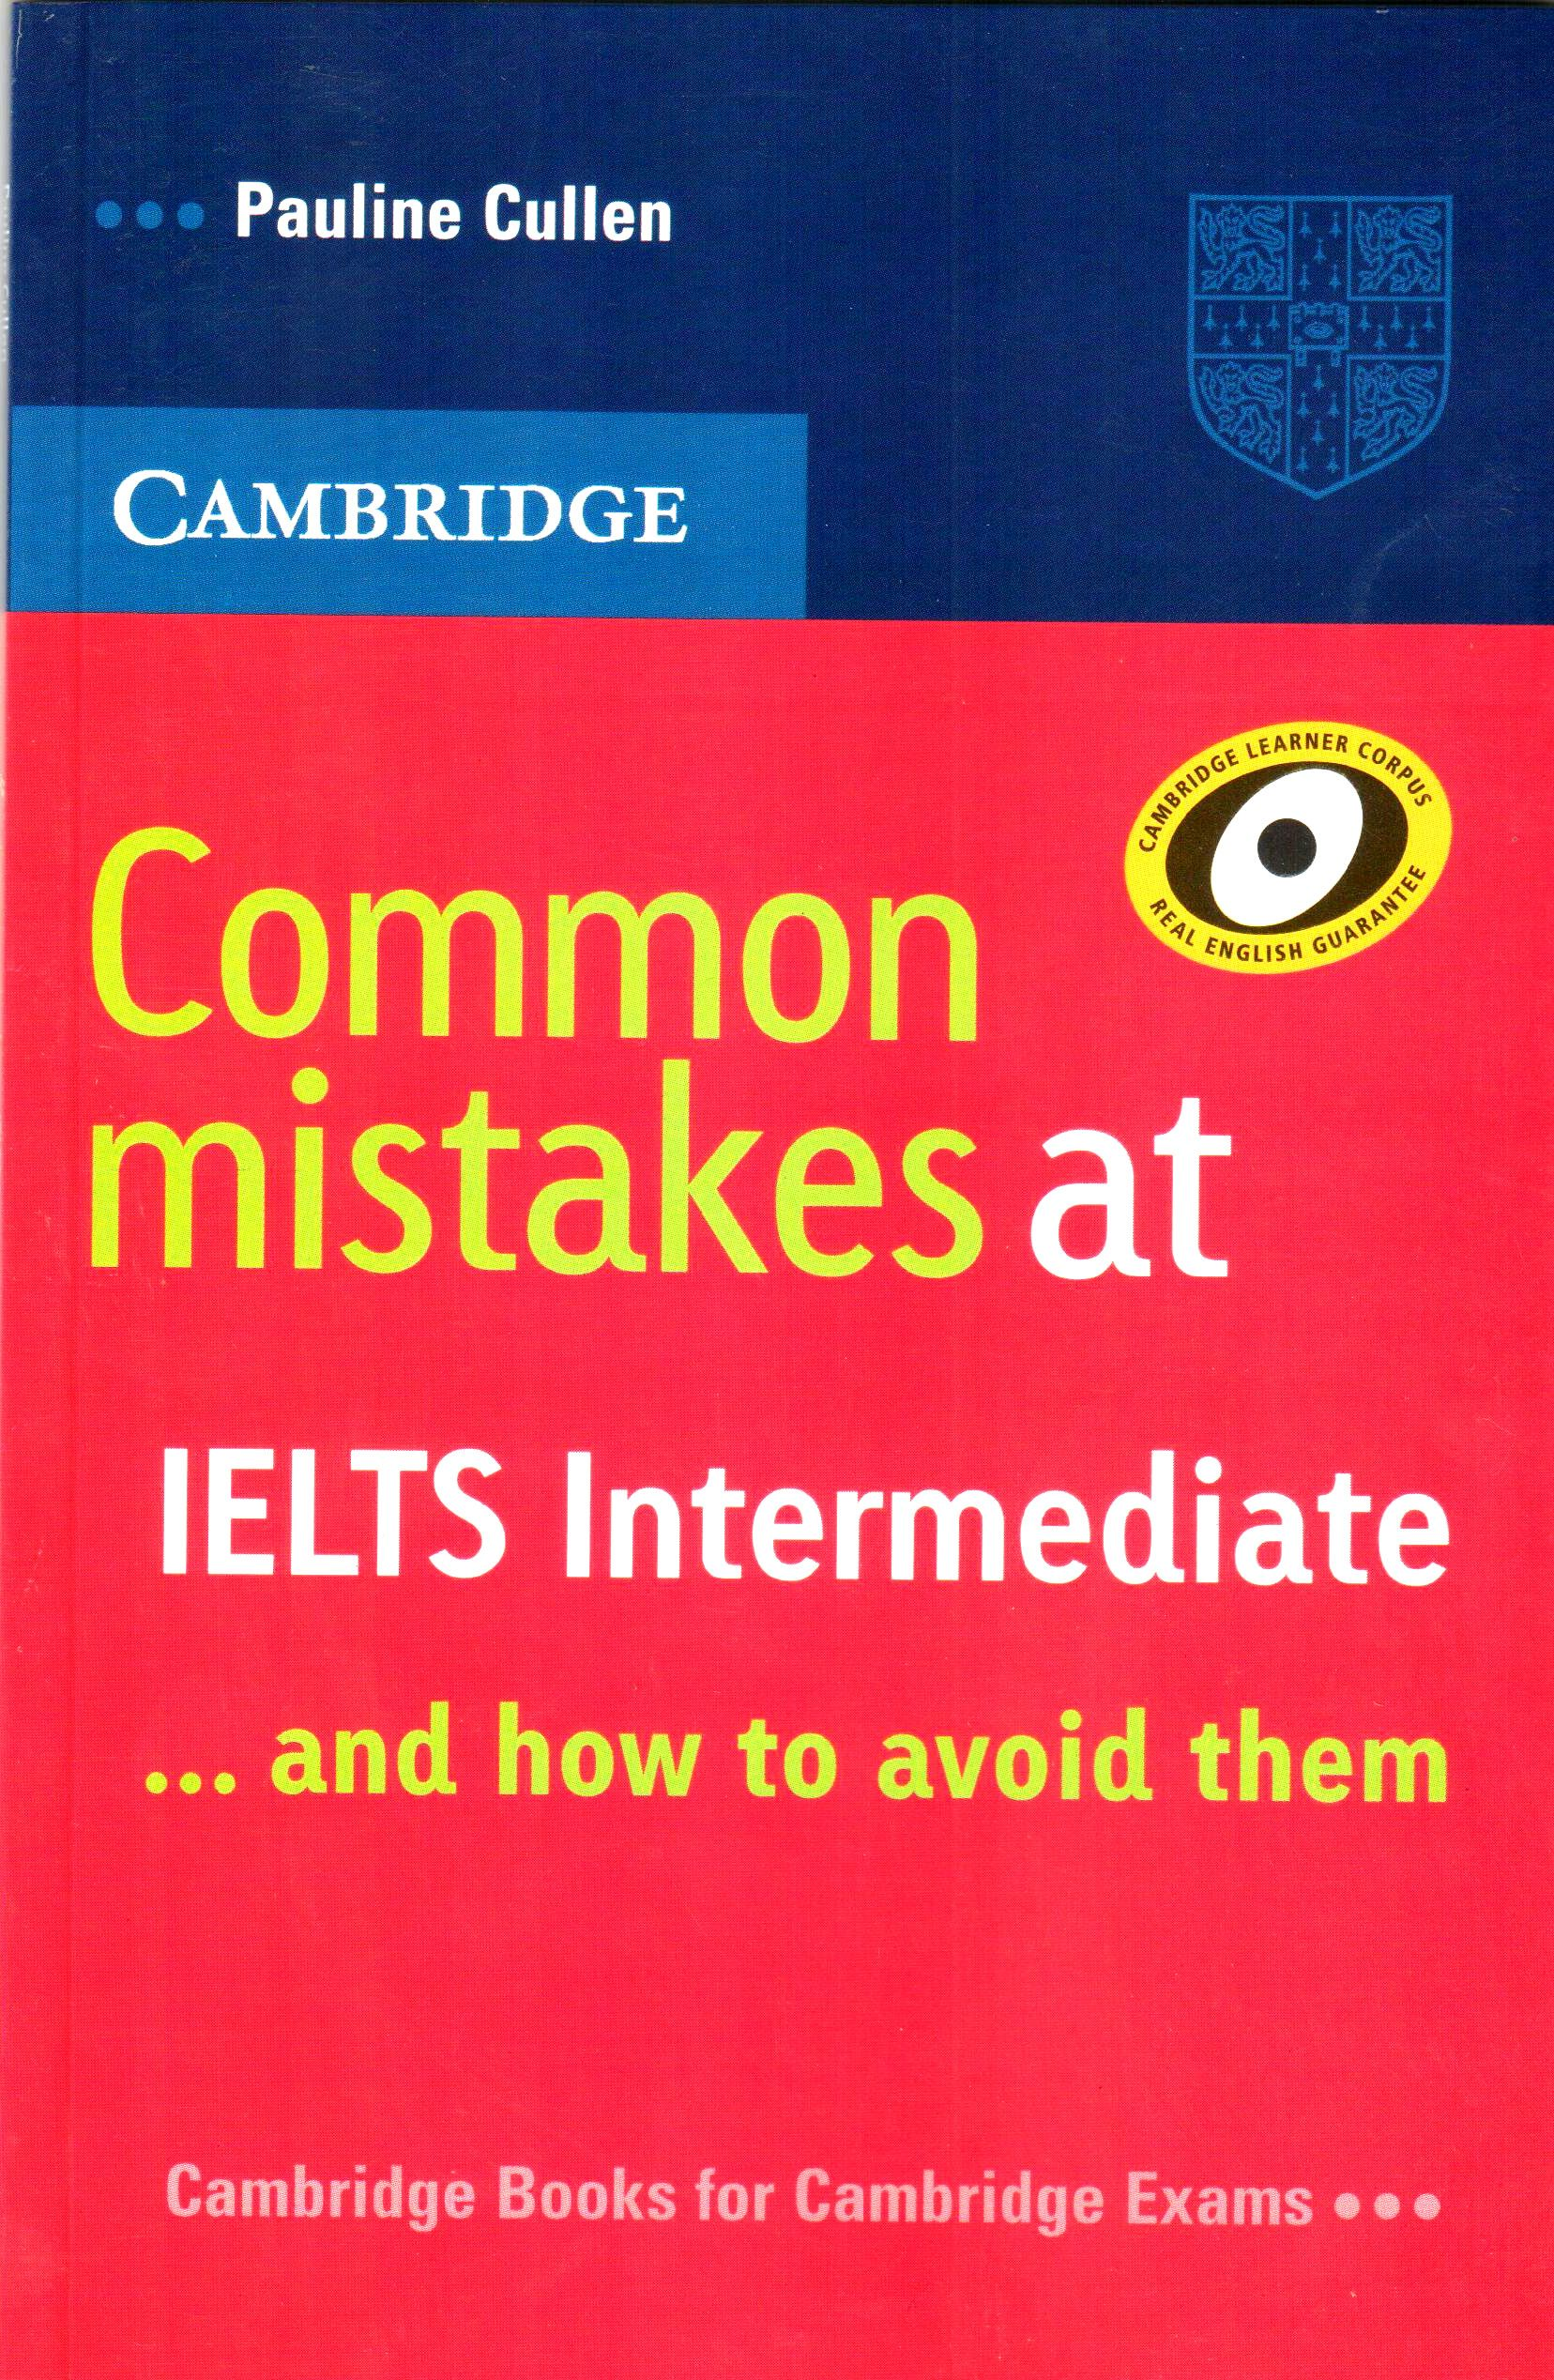 cambridge common mistakes at ielts intermediate pdf